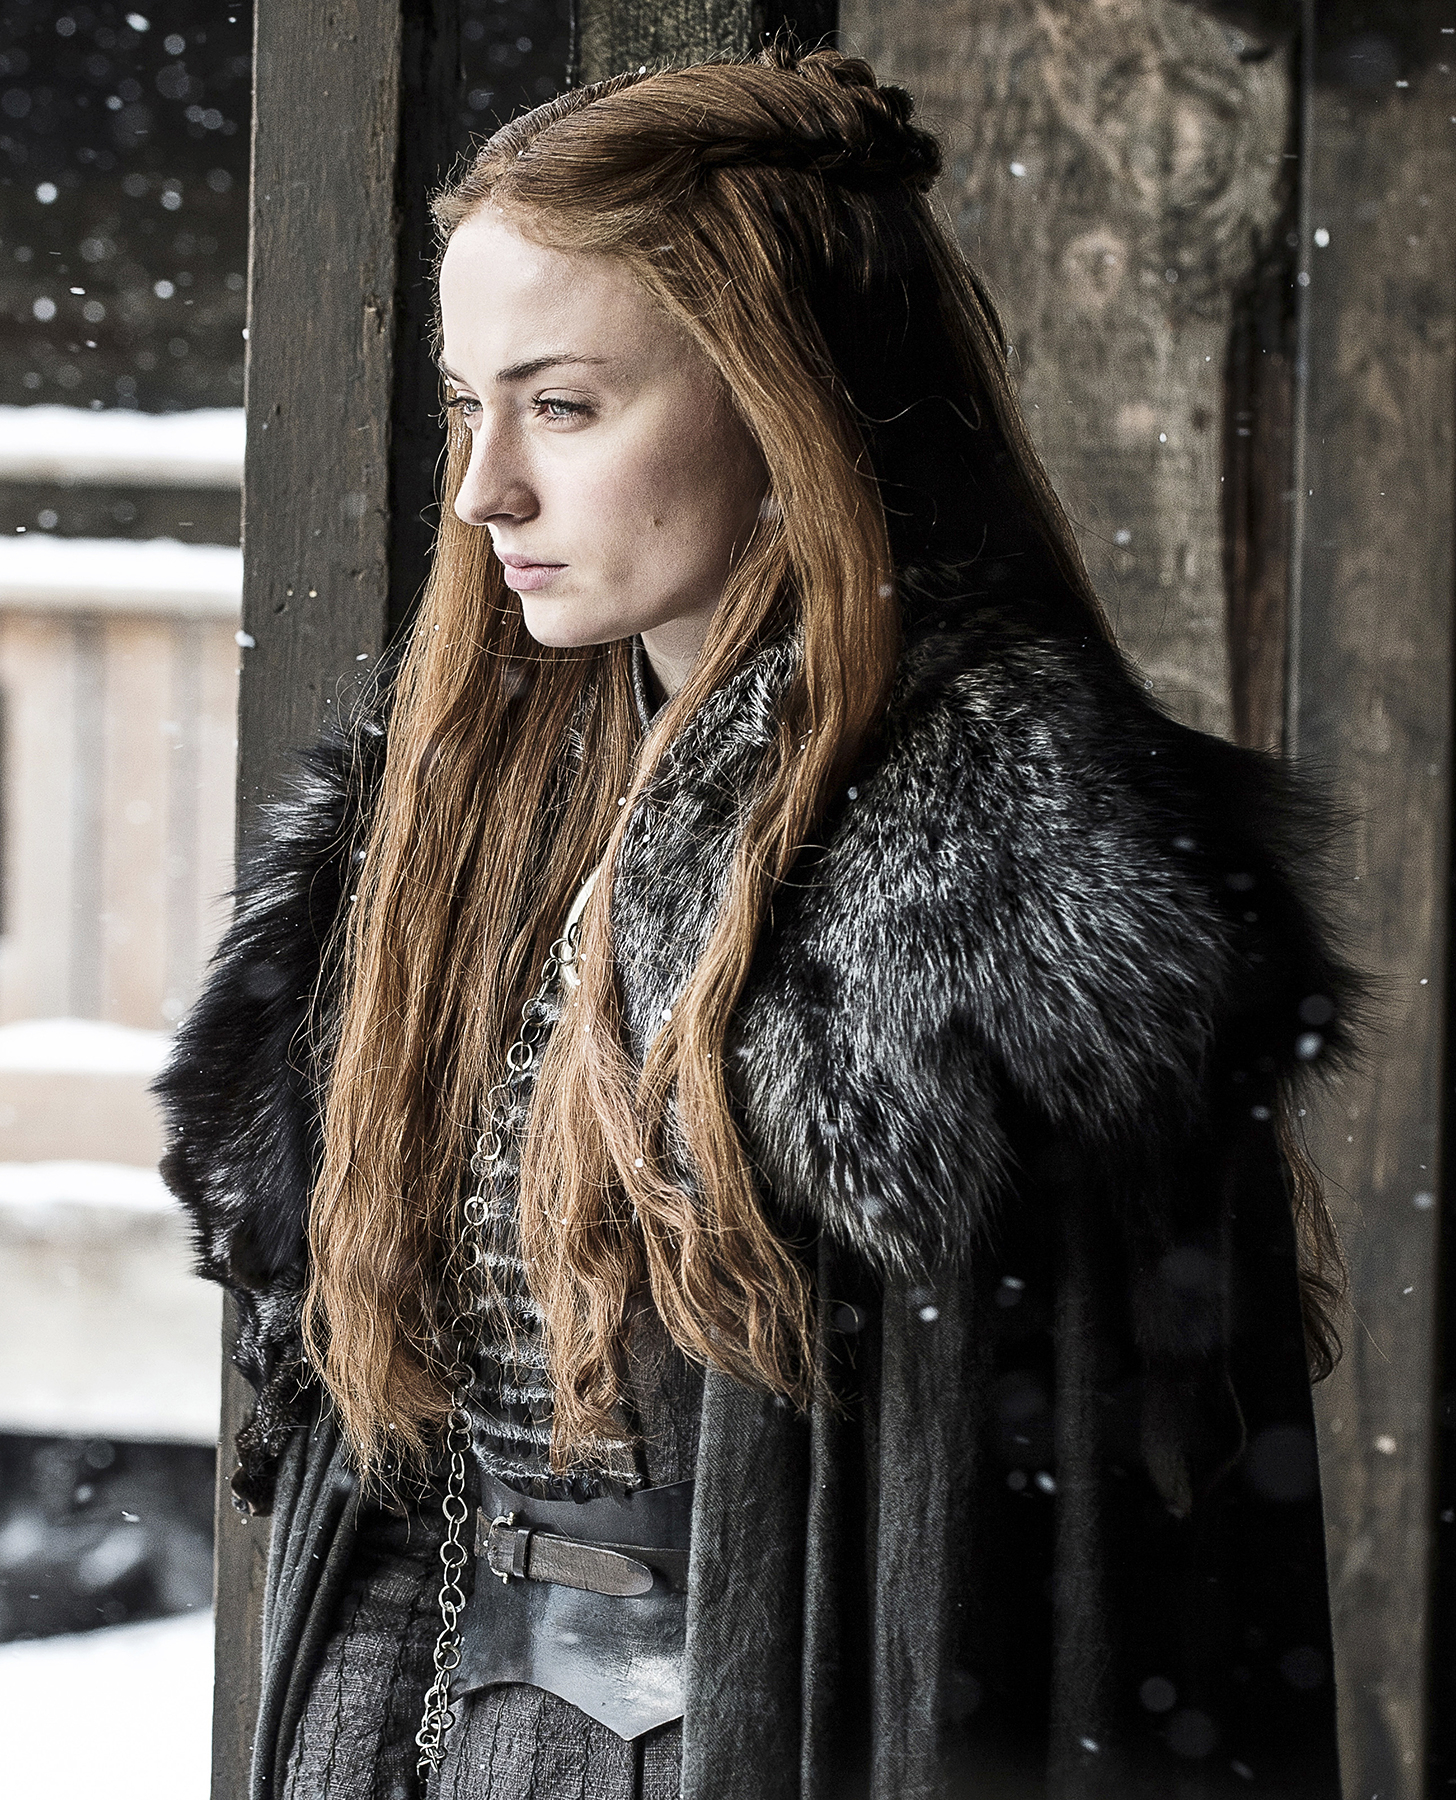 Sophie Turner Sansa Game of Thrones